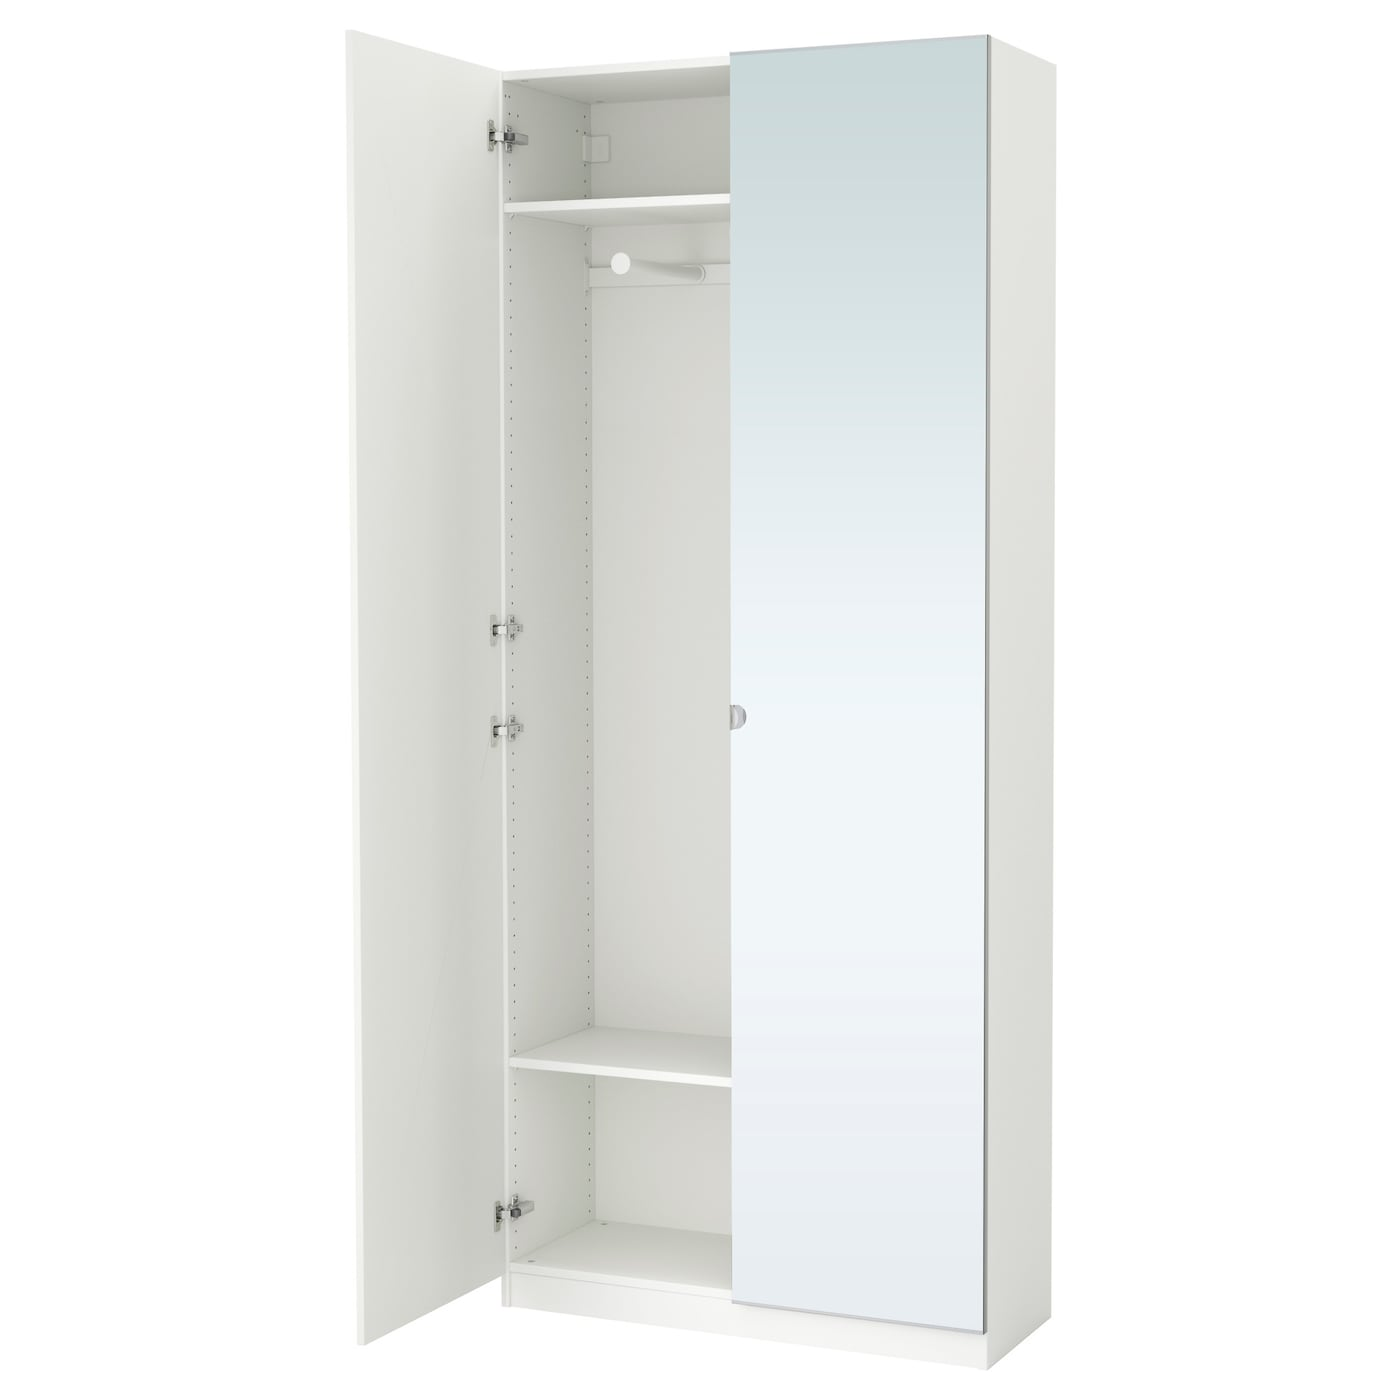 pax armoire penderie blanc tanem vikedal 100x38x236 cm ikea. Black Bedroom Furniture Sets. Home Design Ideas